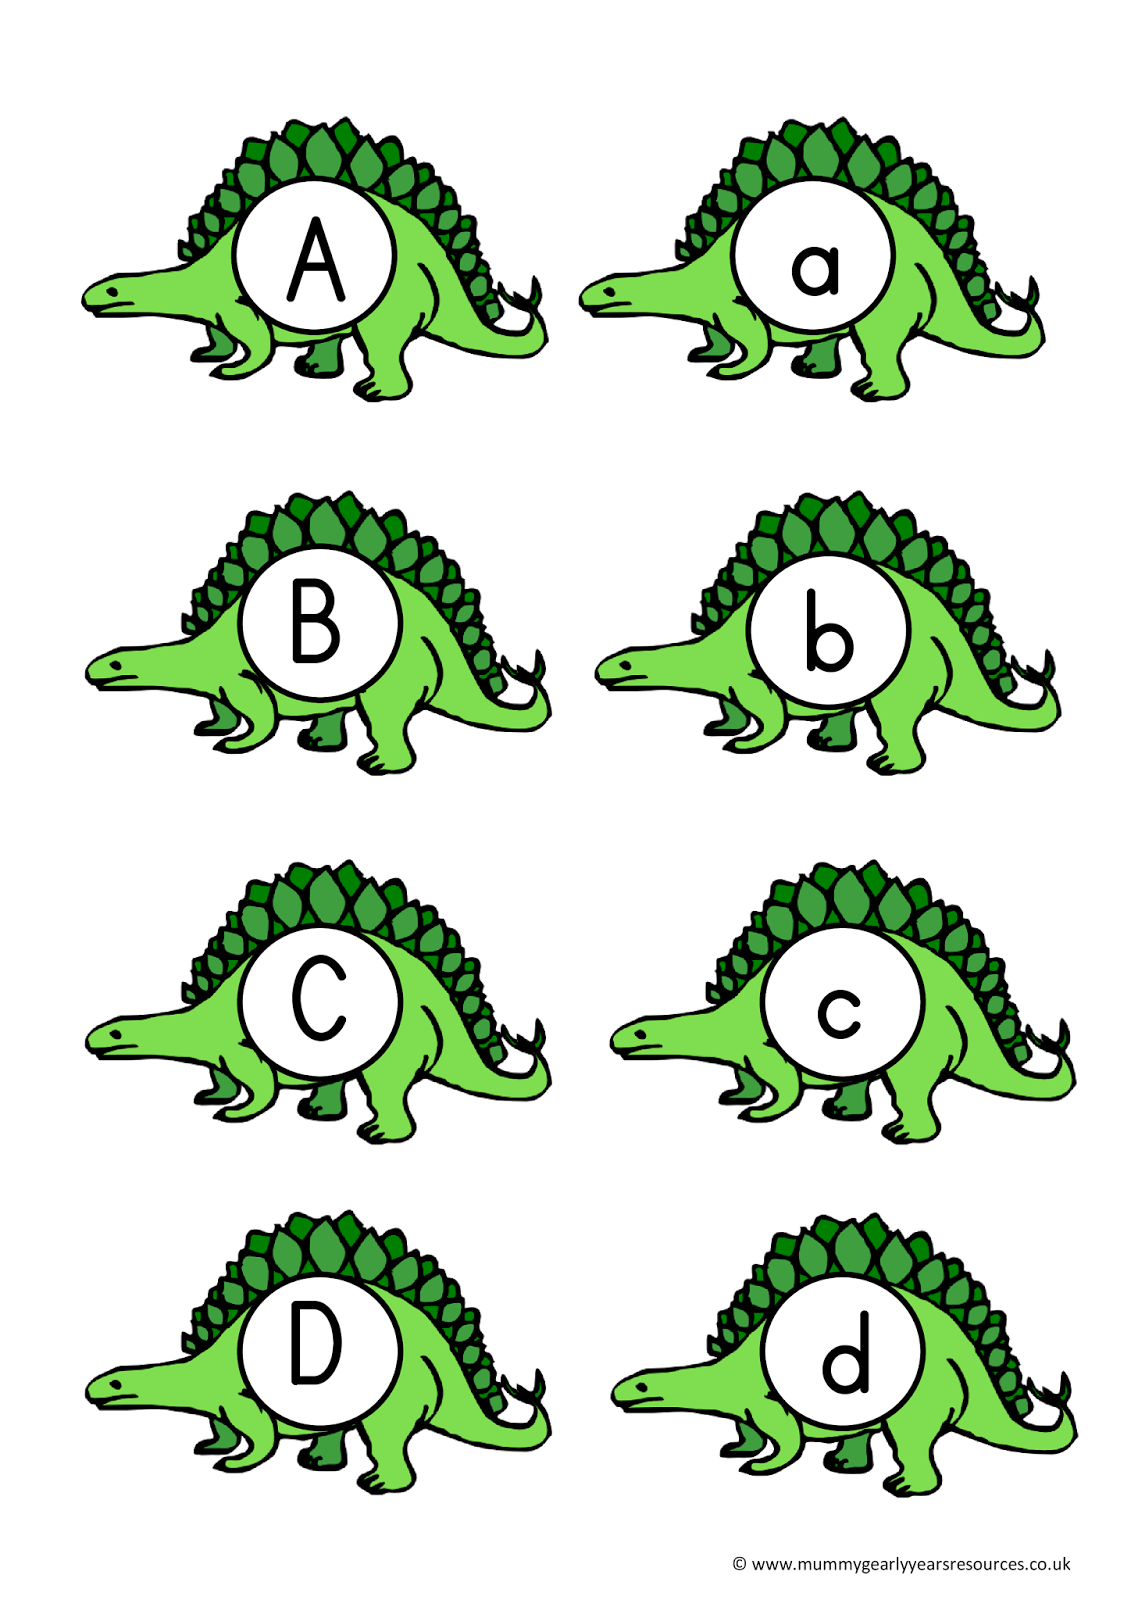 Mummy G early years resources: Dinosaur letters and numbers | KBN ...